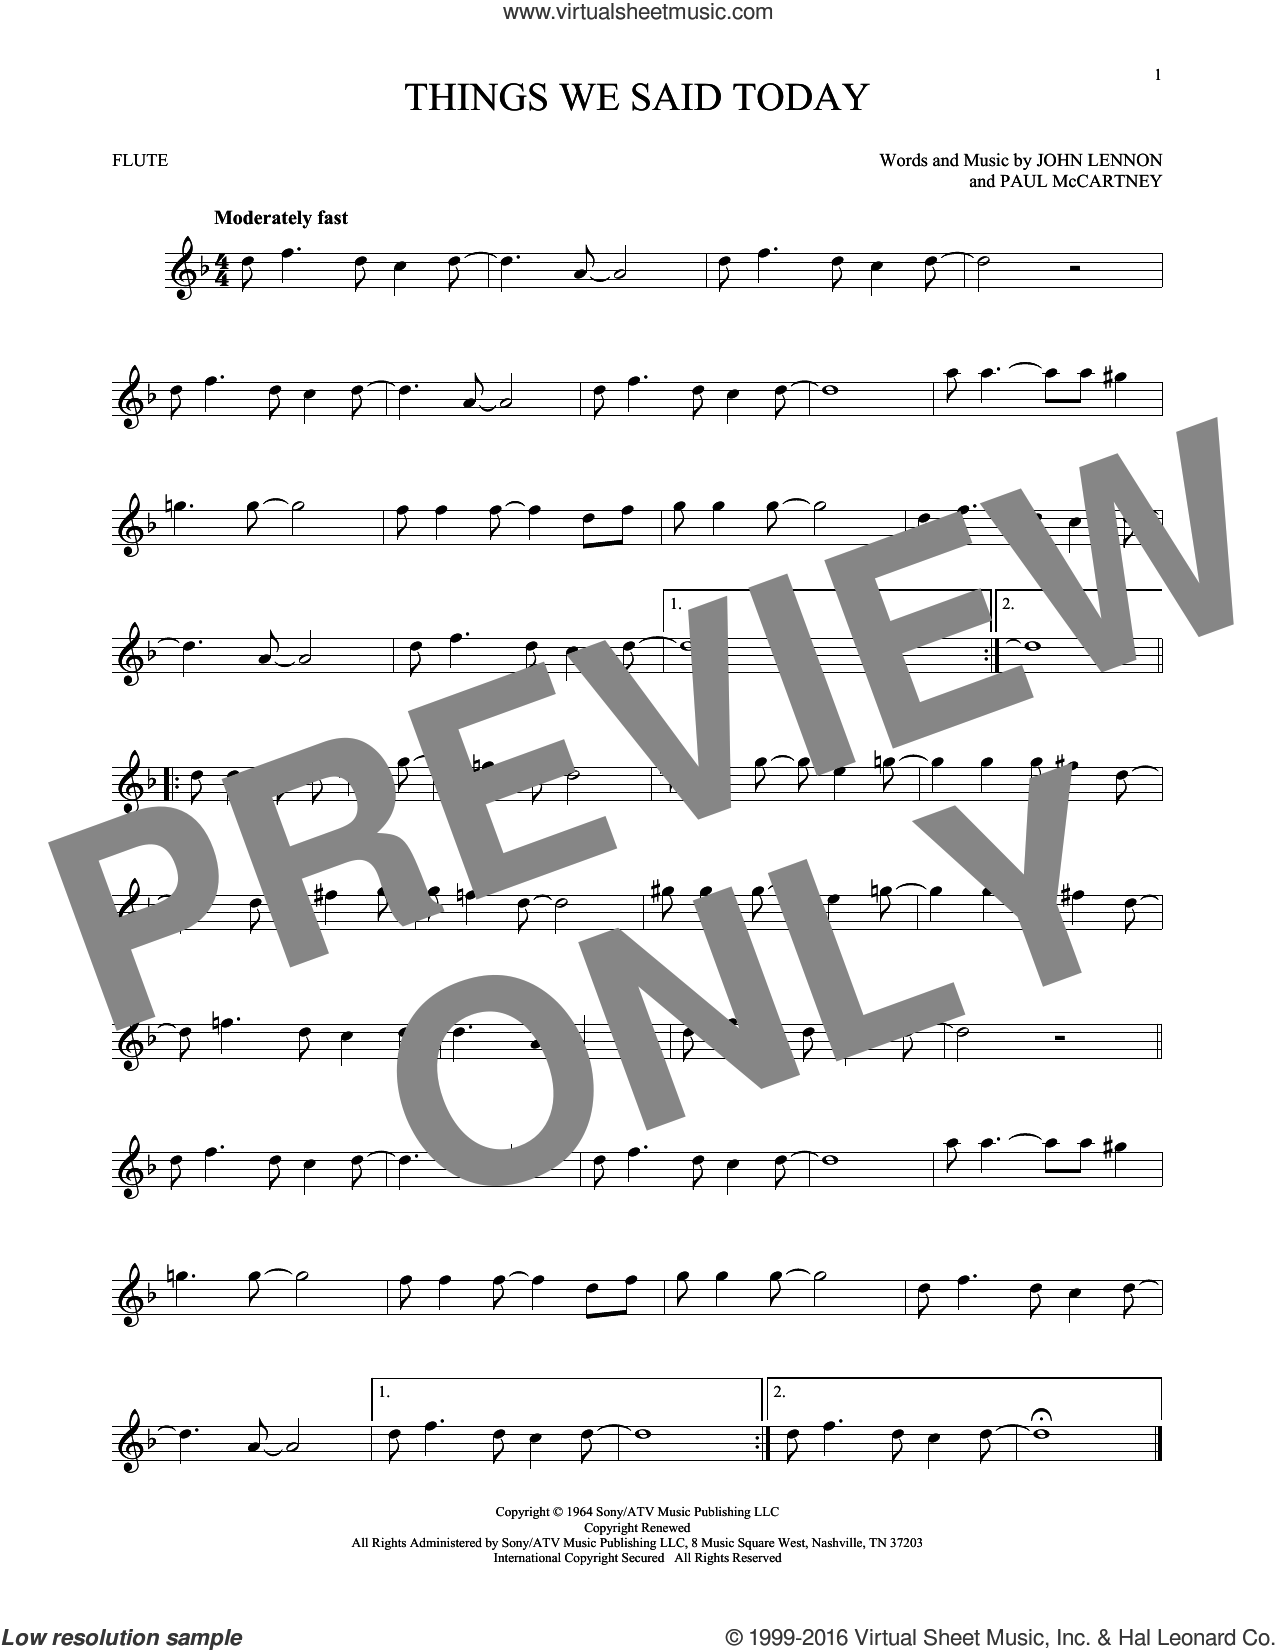 Things We Said Today sheet music for flute solo by The Beatles, John Lennon and Paul McCartney, intermediate skill level